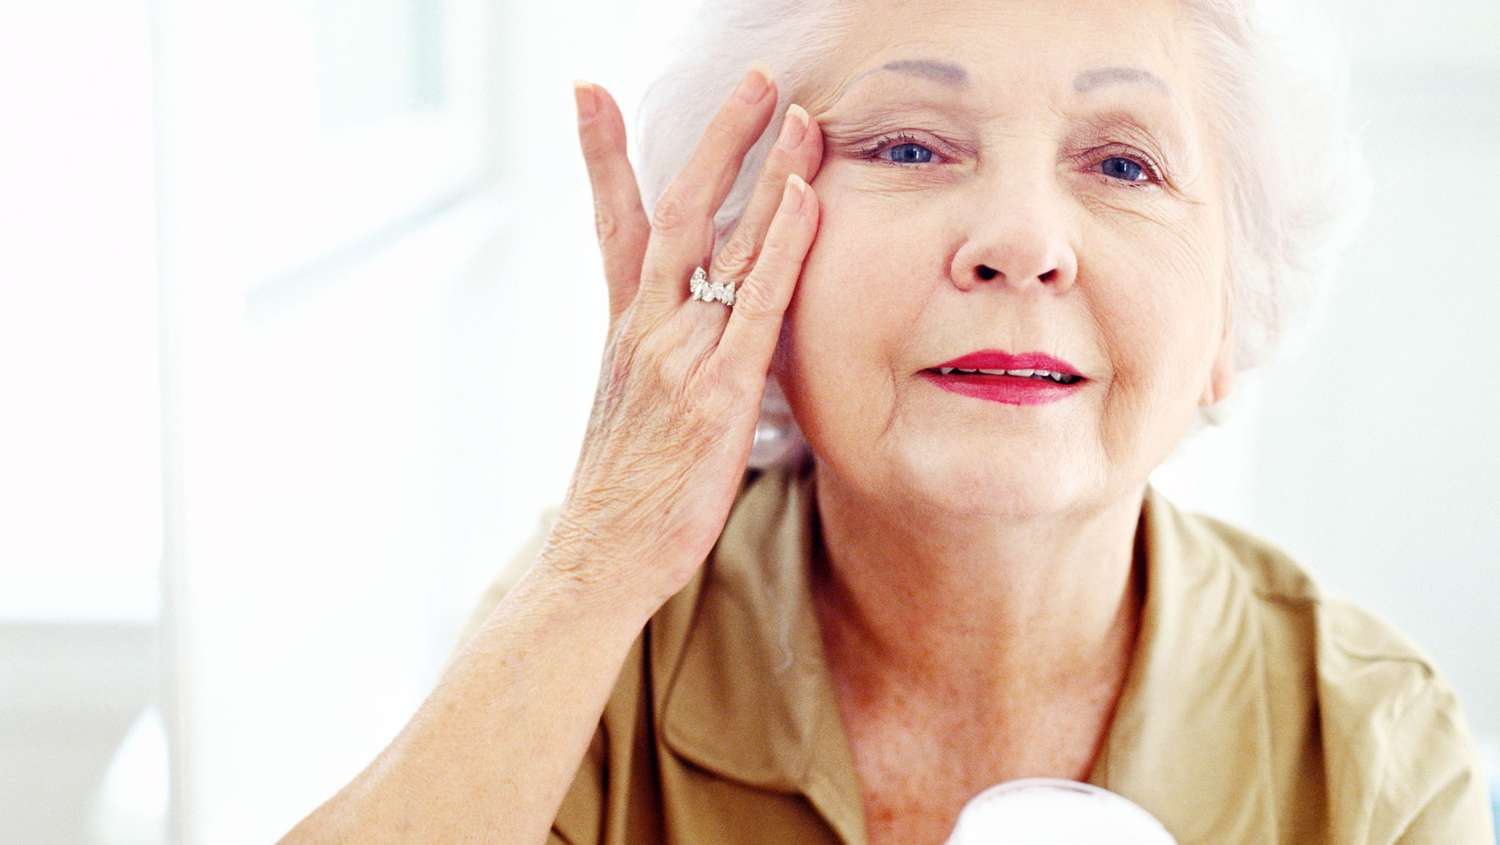 What's Your Opinion About Anti-Aging Skin Care?